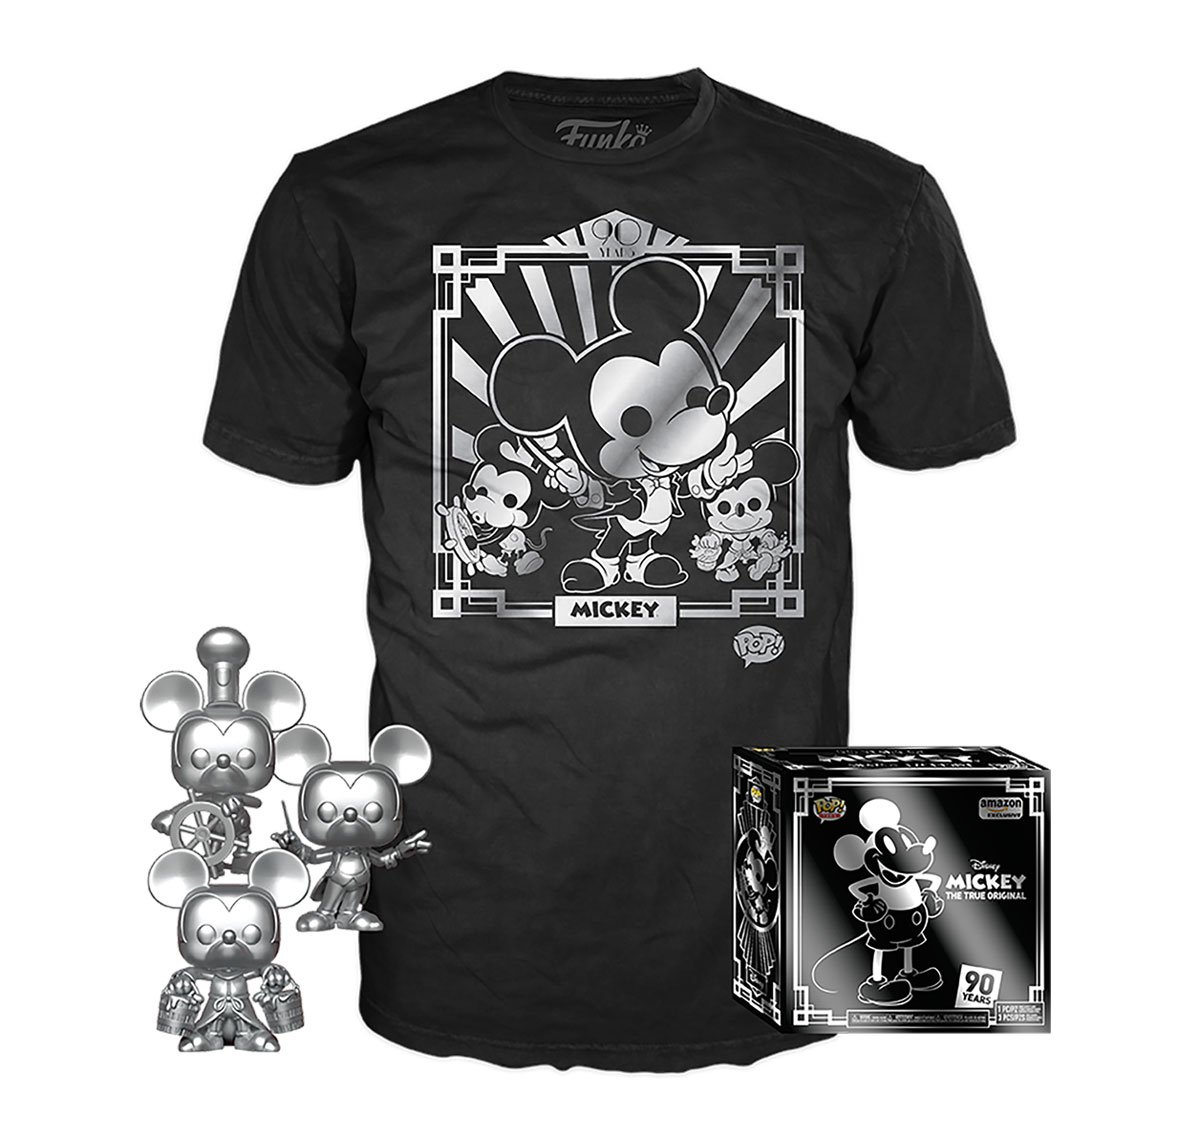 RT & follow @OriginalFunko for a chance to WIN an @Amazon exclusive Mickey's 90th Pop! & Tee combo. #Mickey90